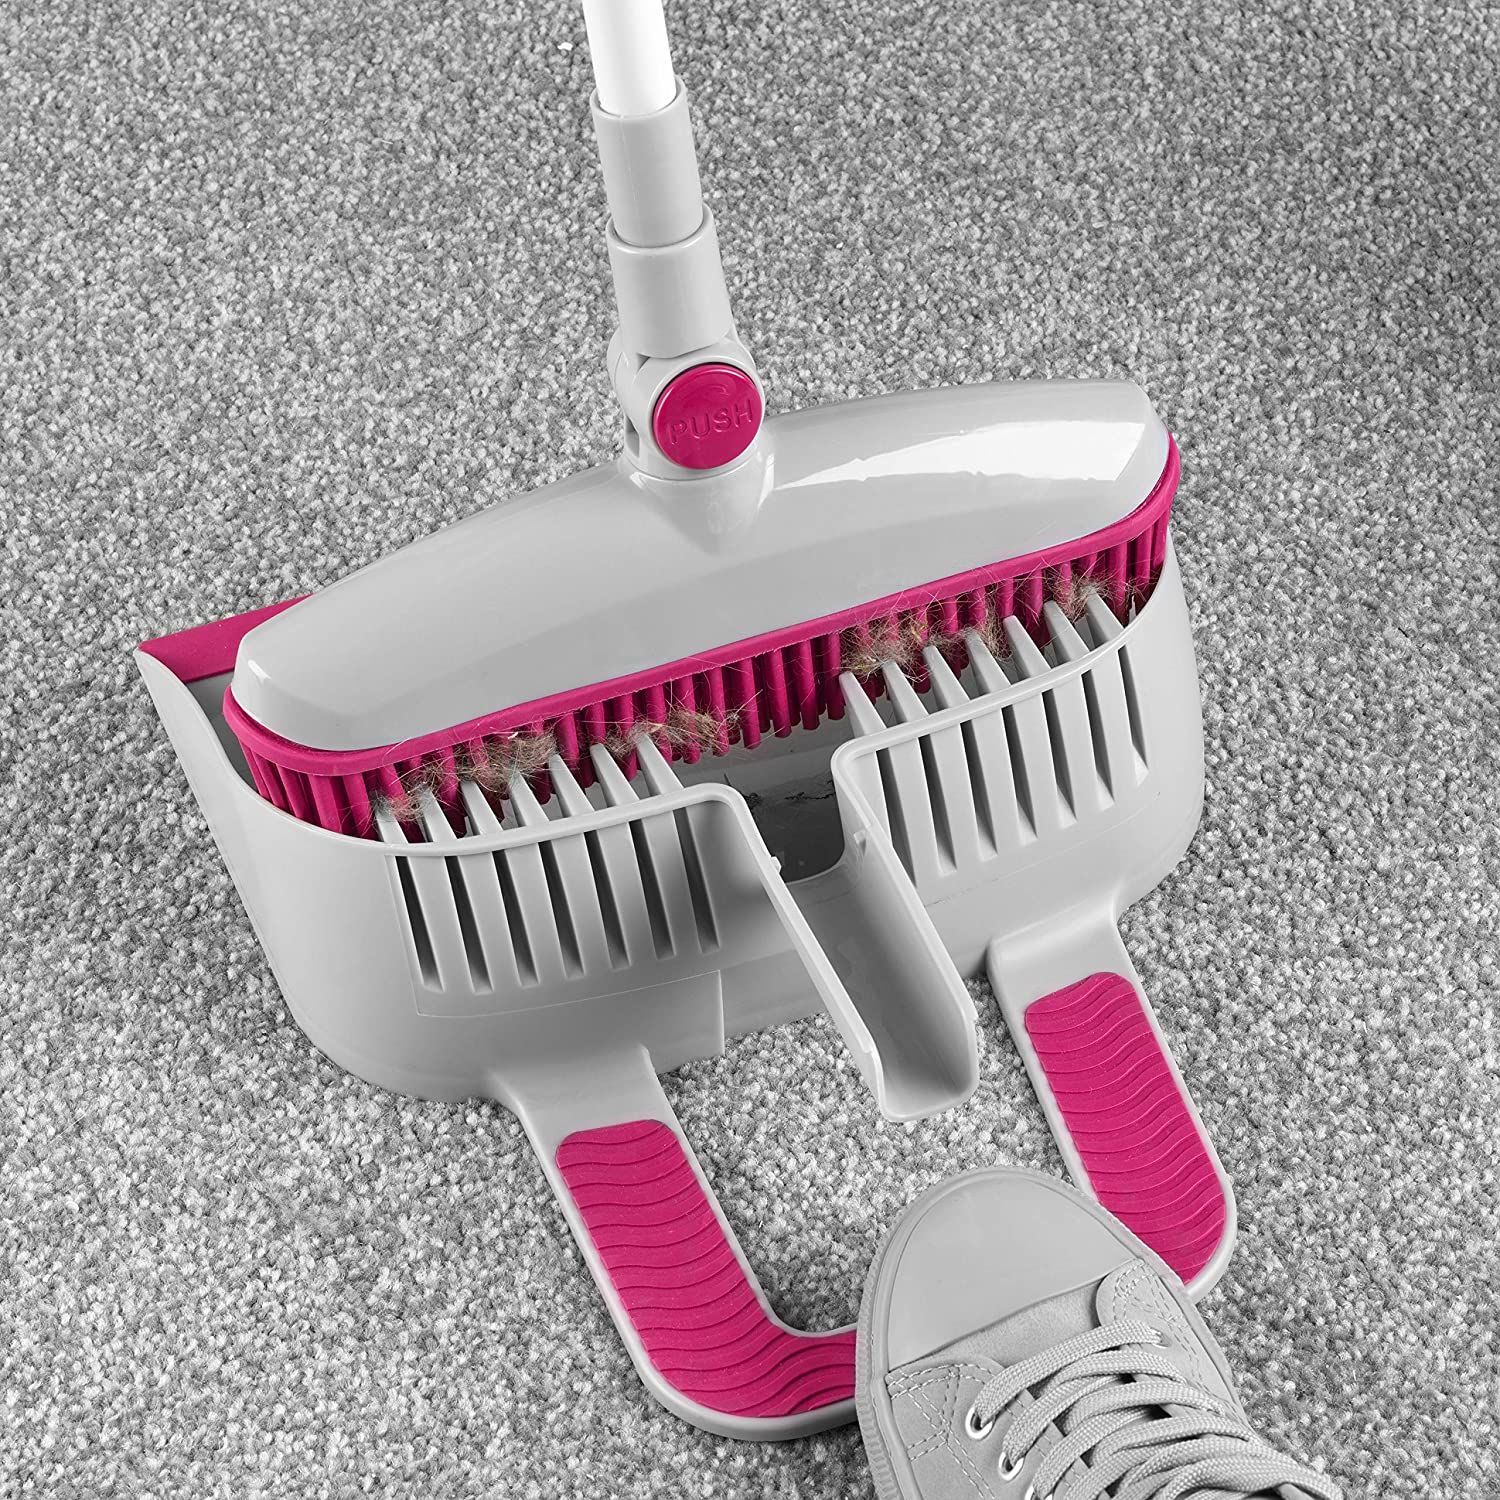 Perfect for Cleaning Pet Hair /& Dust 180/° Swivel Head Kleeneze KL068354EU7 Rubber Head Dustpan and Brush with Telescopic Handle